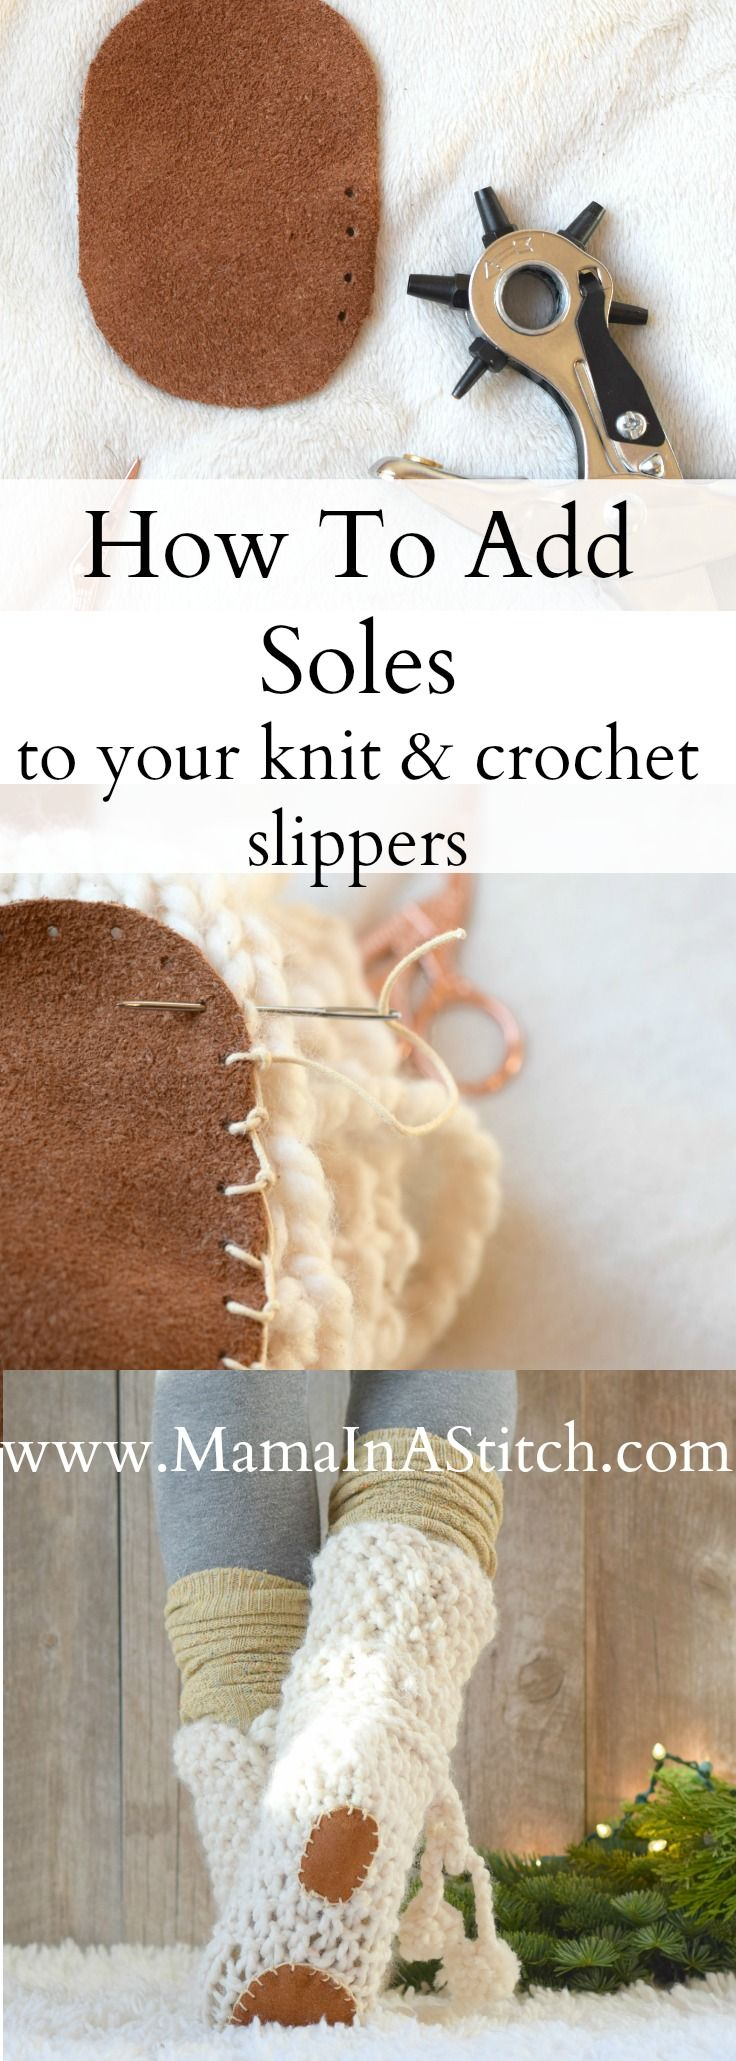 How To Add Soles to Knit or Crochet Slippers | Crocheting ...